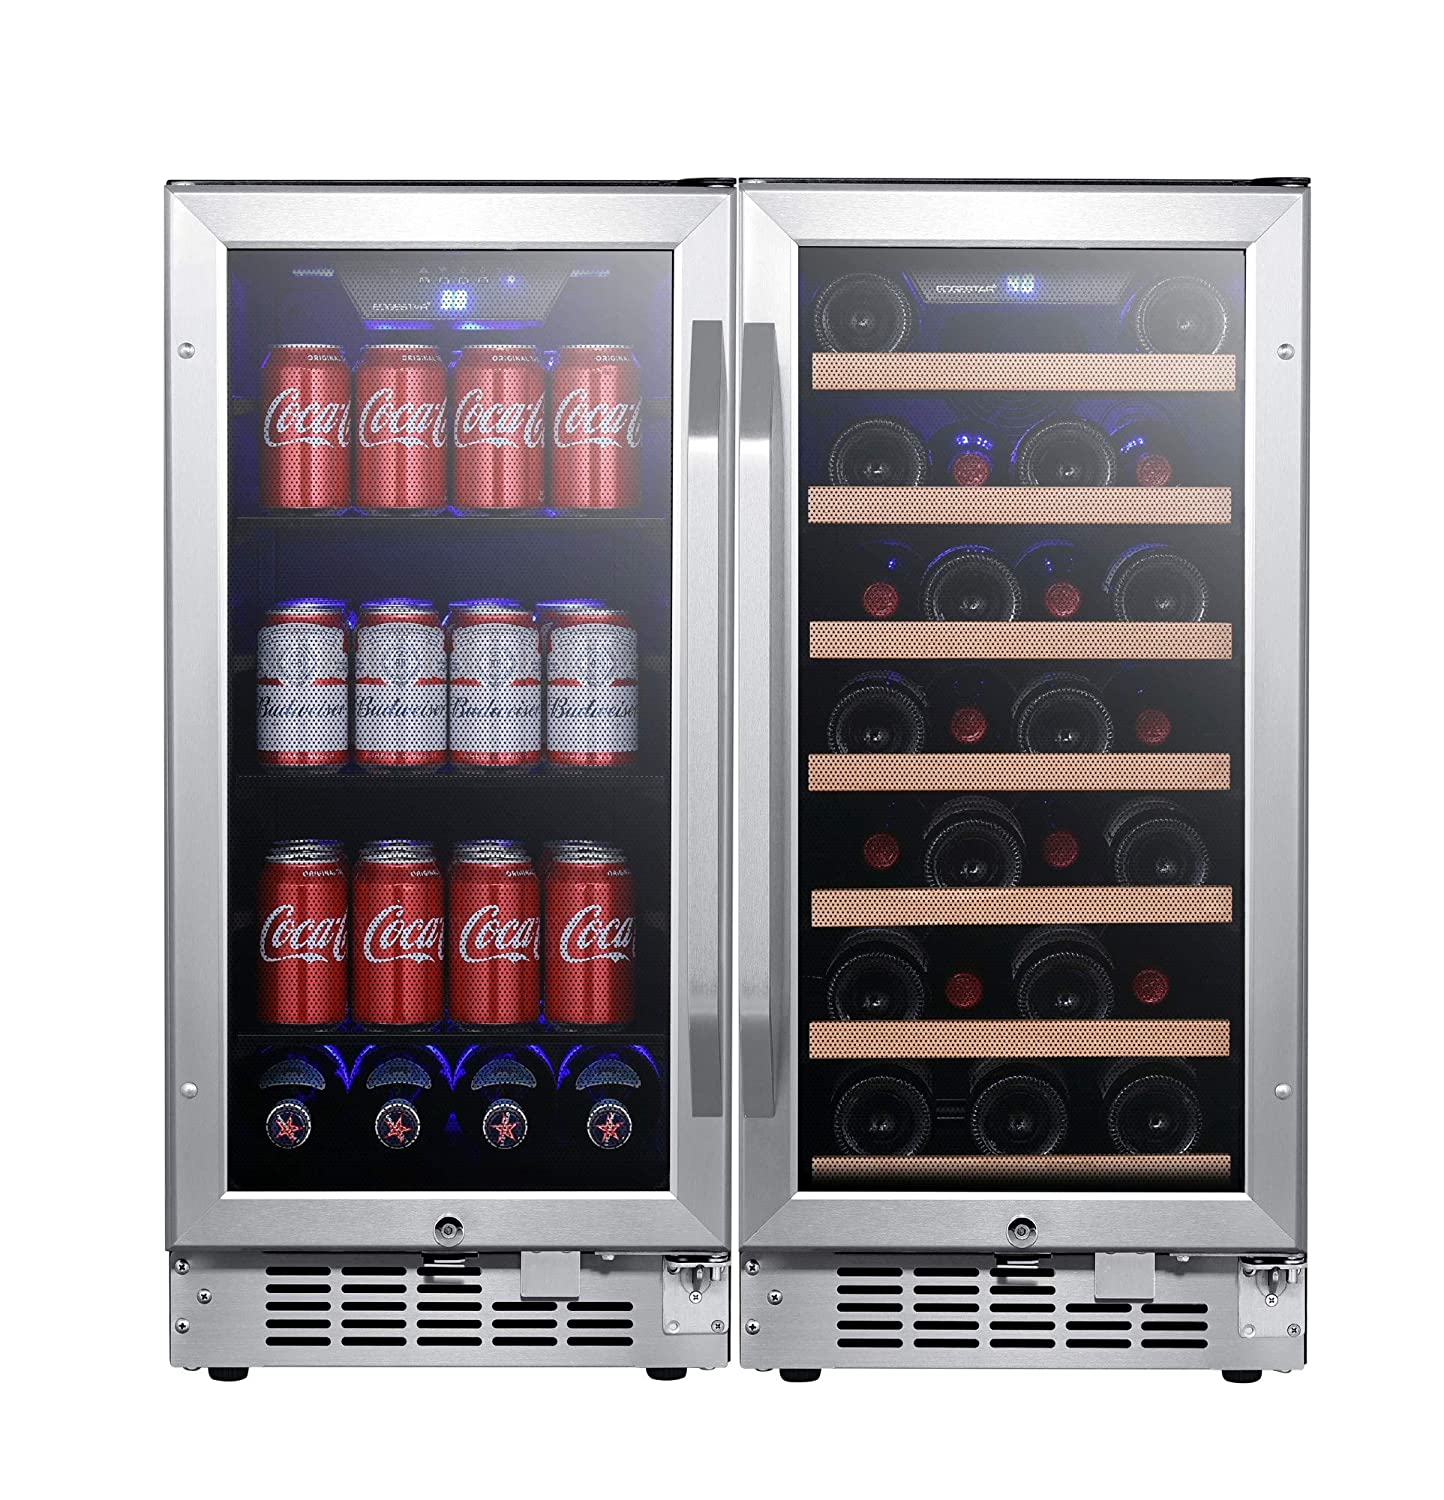 EdgeStar CWBV80301 30 Inch Wide 30 Bottle 80 Can Side-by-Side Wine and Beverage Cooler